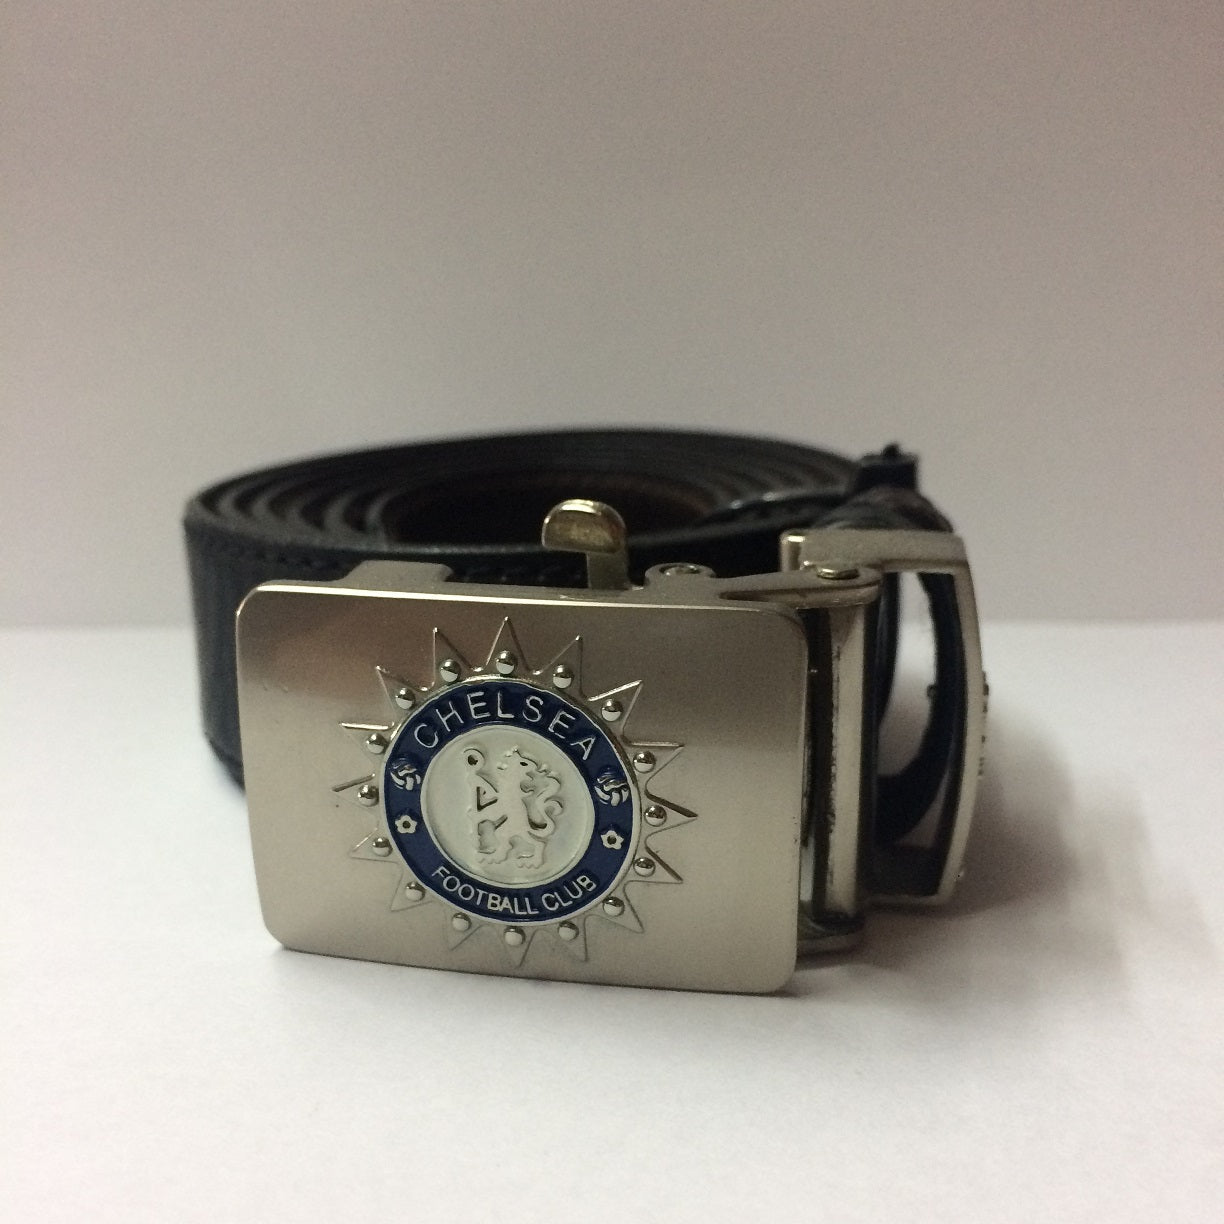 Chelsea Men's Dress Belt